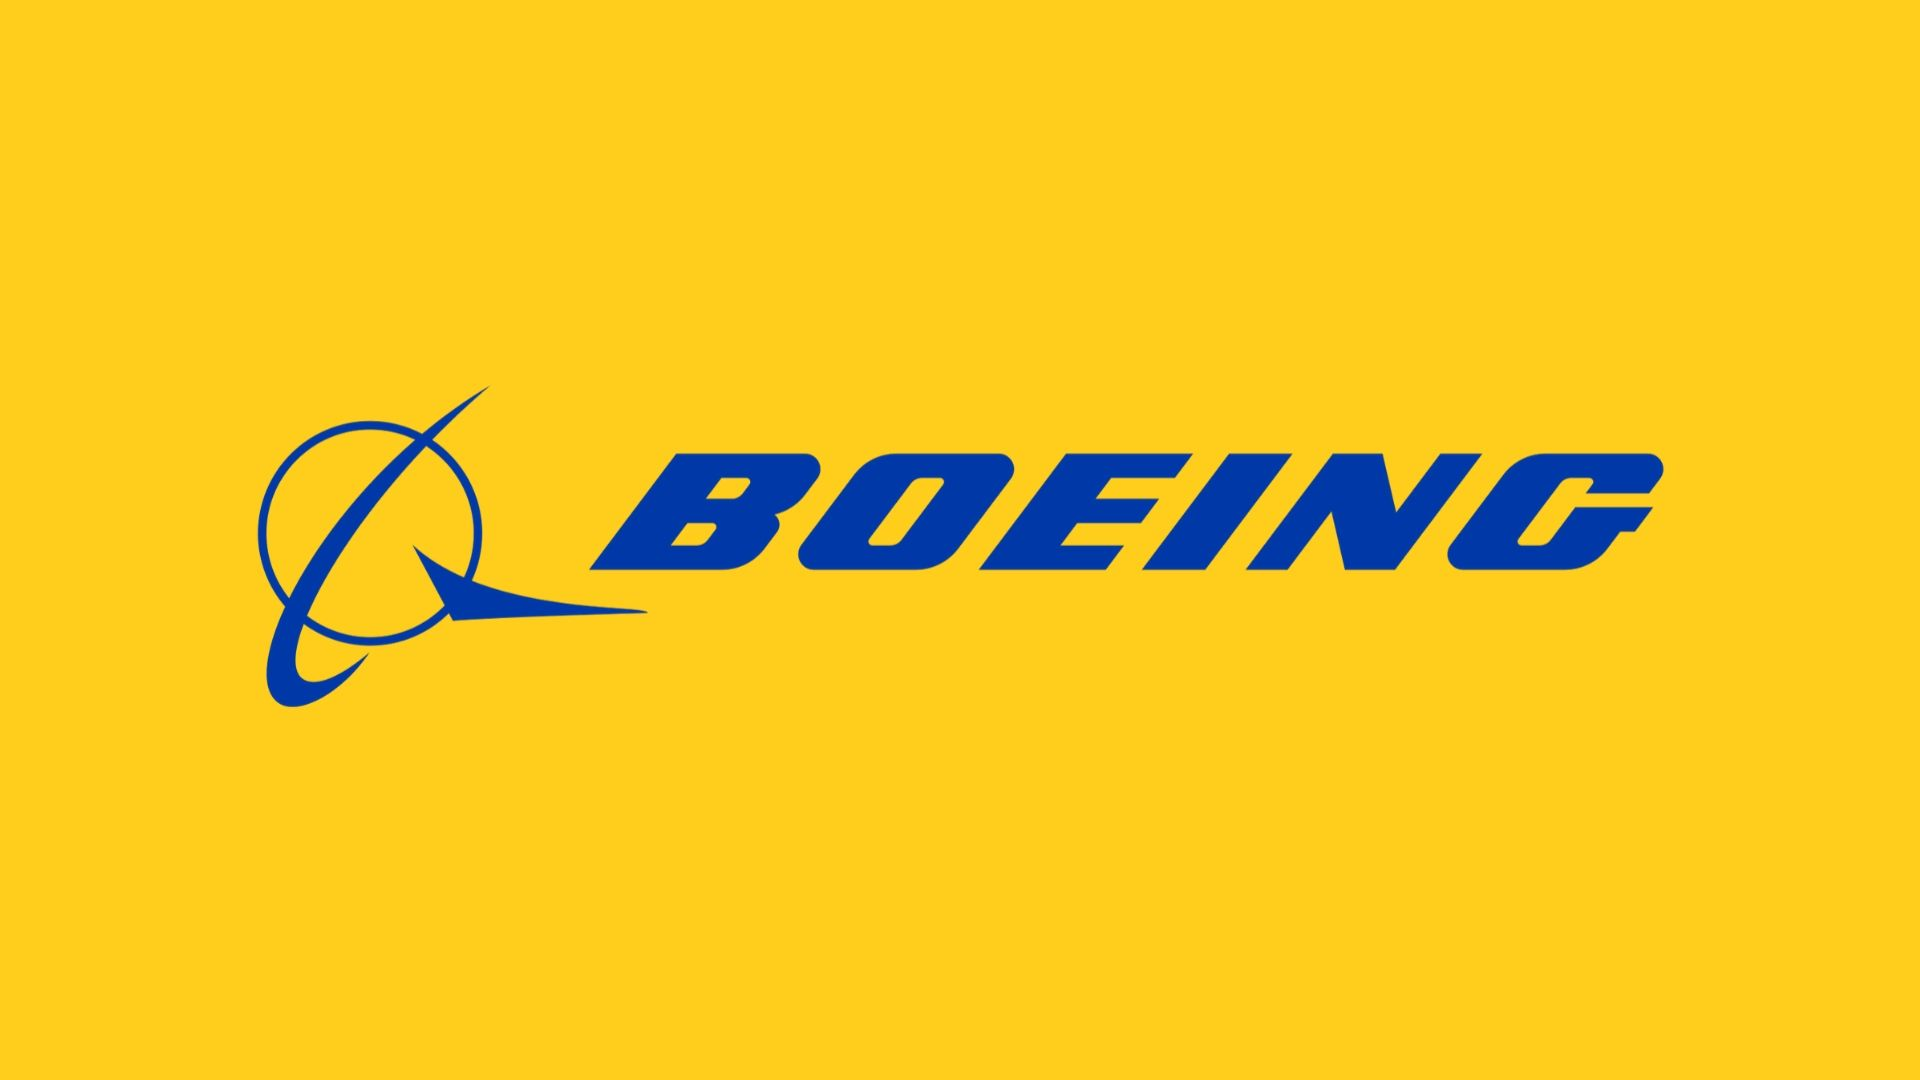 Boeing Competitors